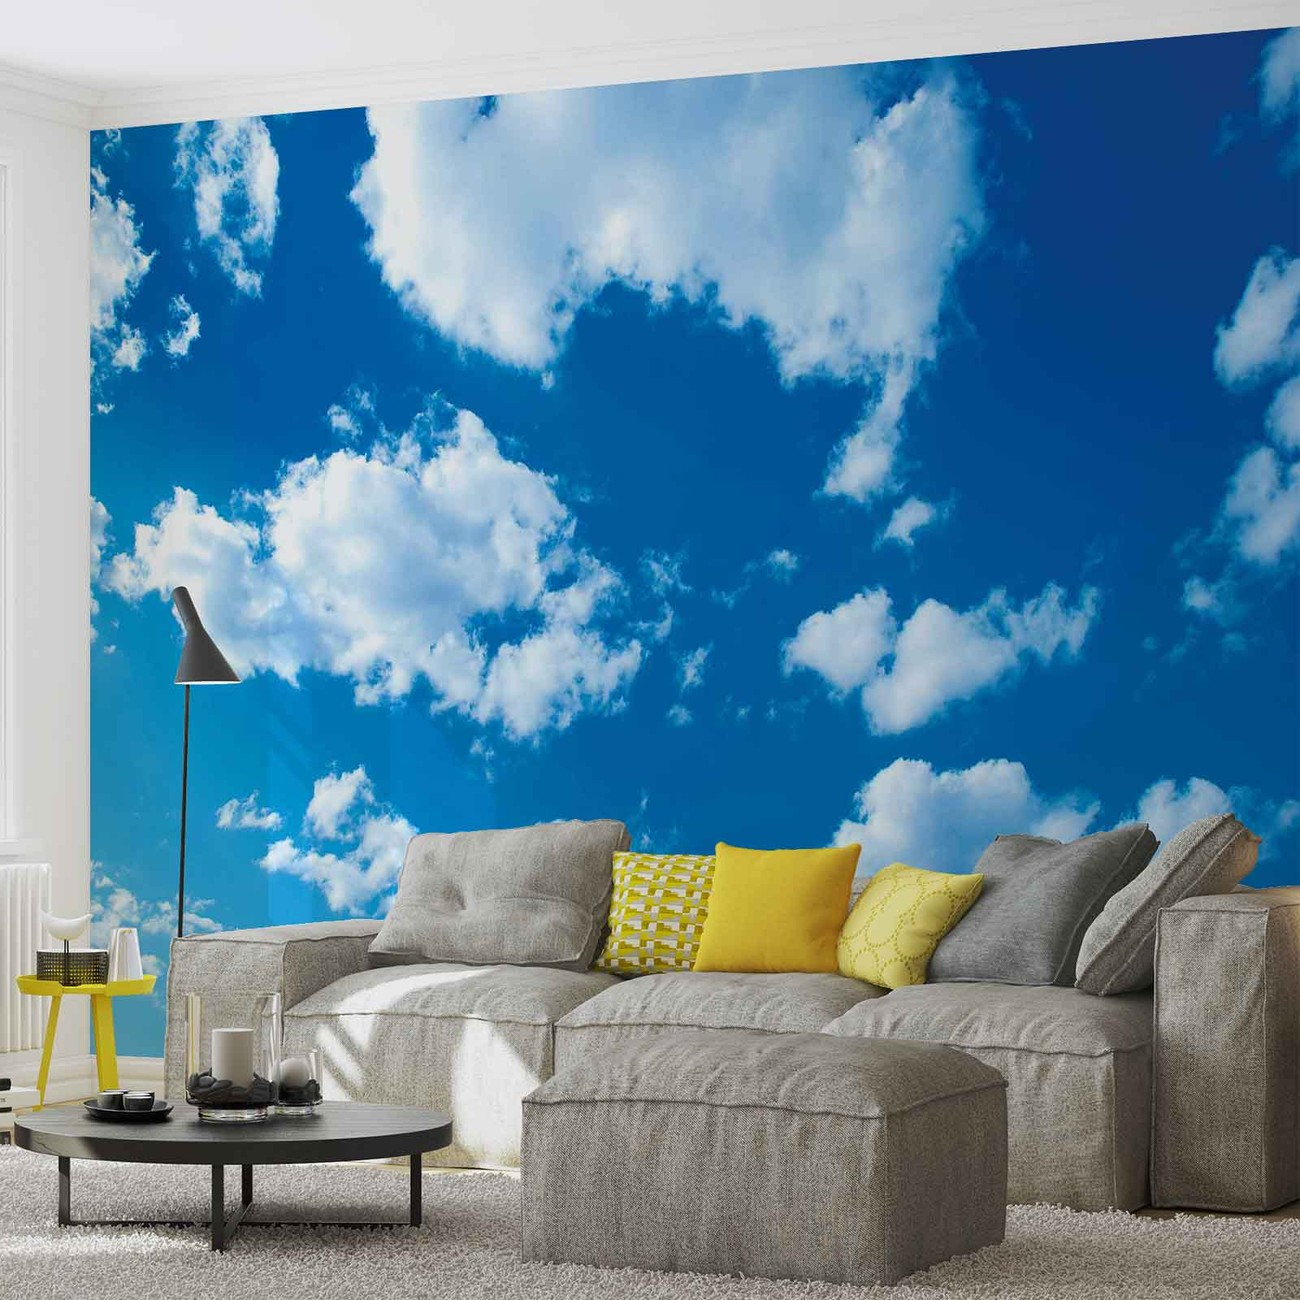 clouds sky nature wall paper mural buy at europosters. Black Bedroom Furniture Sets. Home Design Ideas